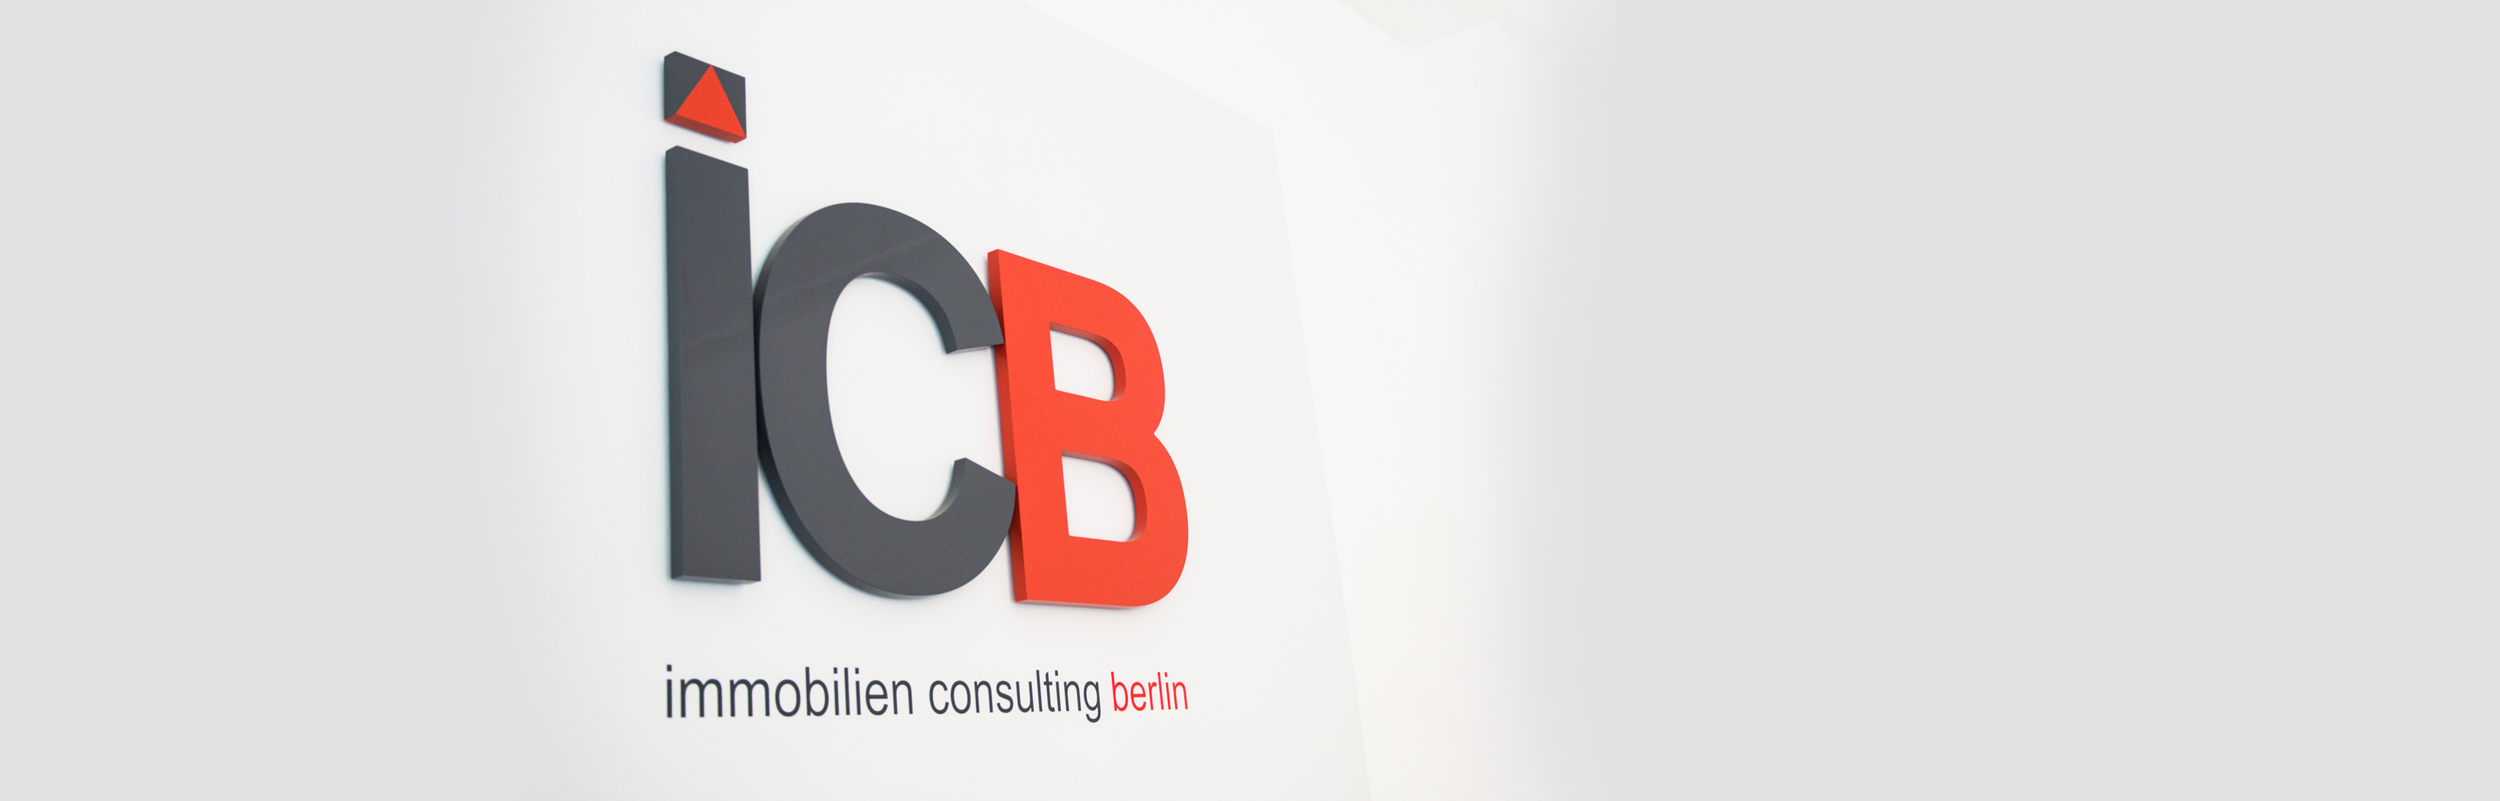 ICB - Immobilien Consulting Berlin - Header